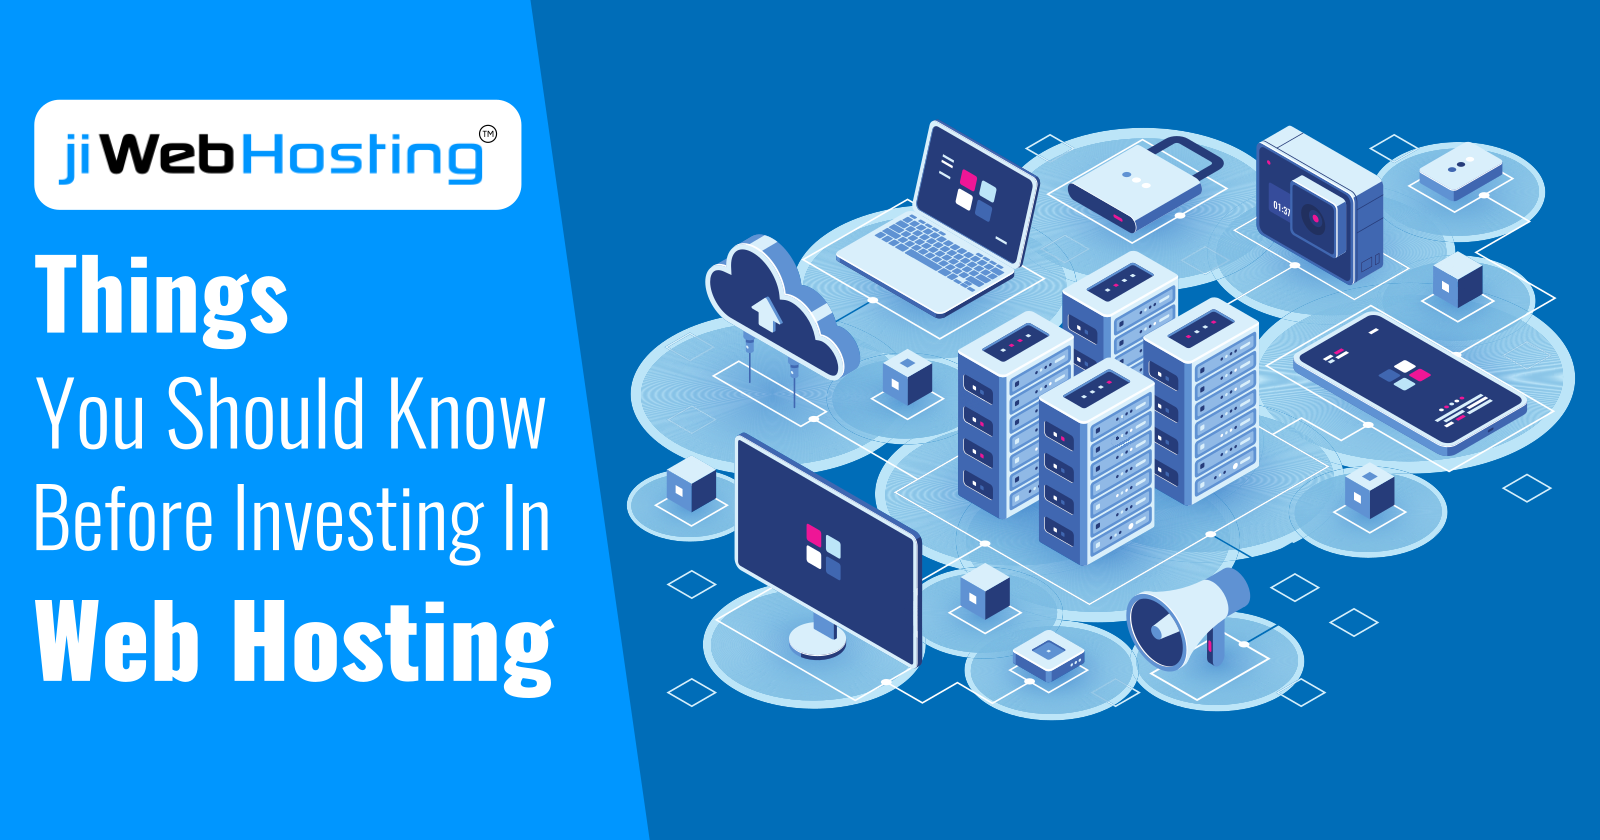 Things You Should Know Before Investing in Web Hosting